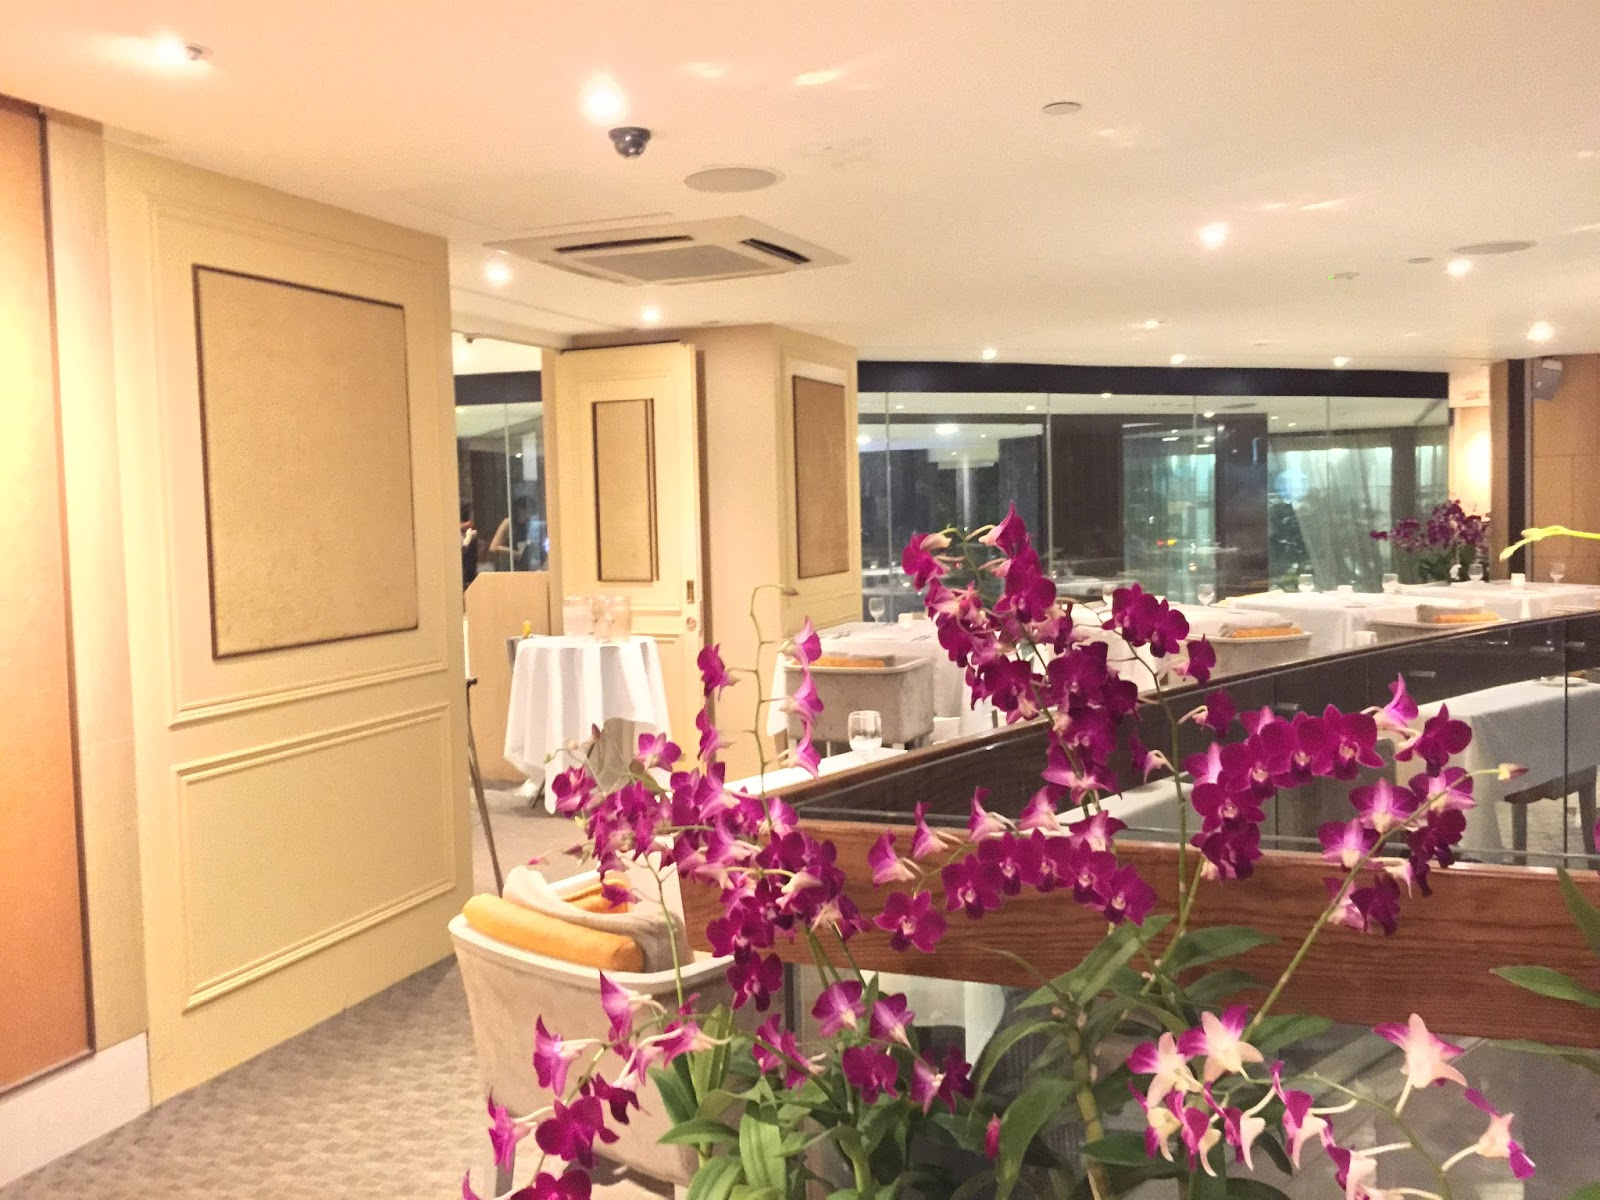 Raffles Place - The Royal Mail Restaurant & Bar Ambience